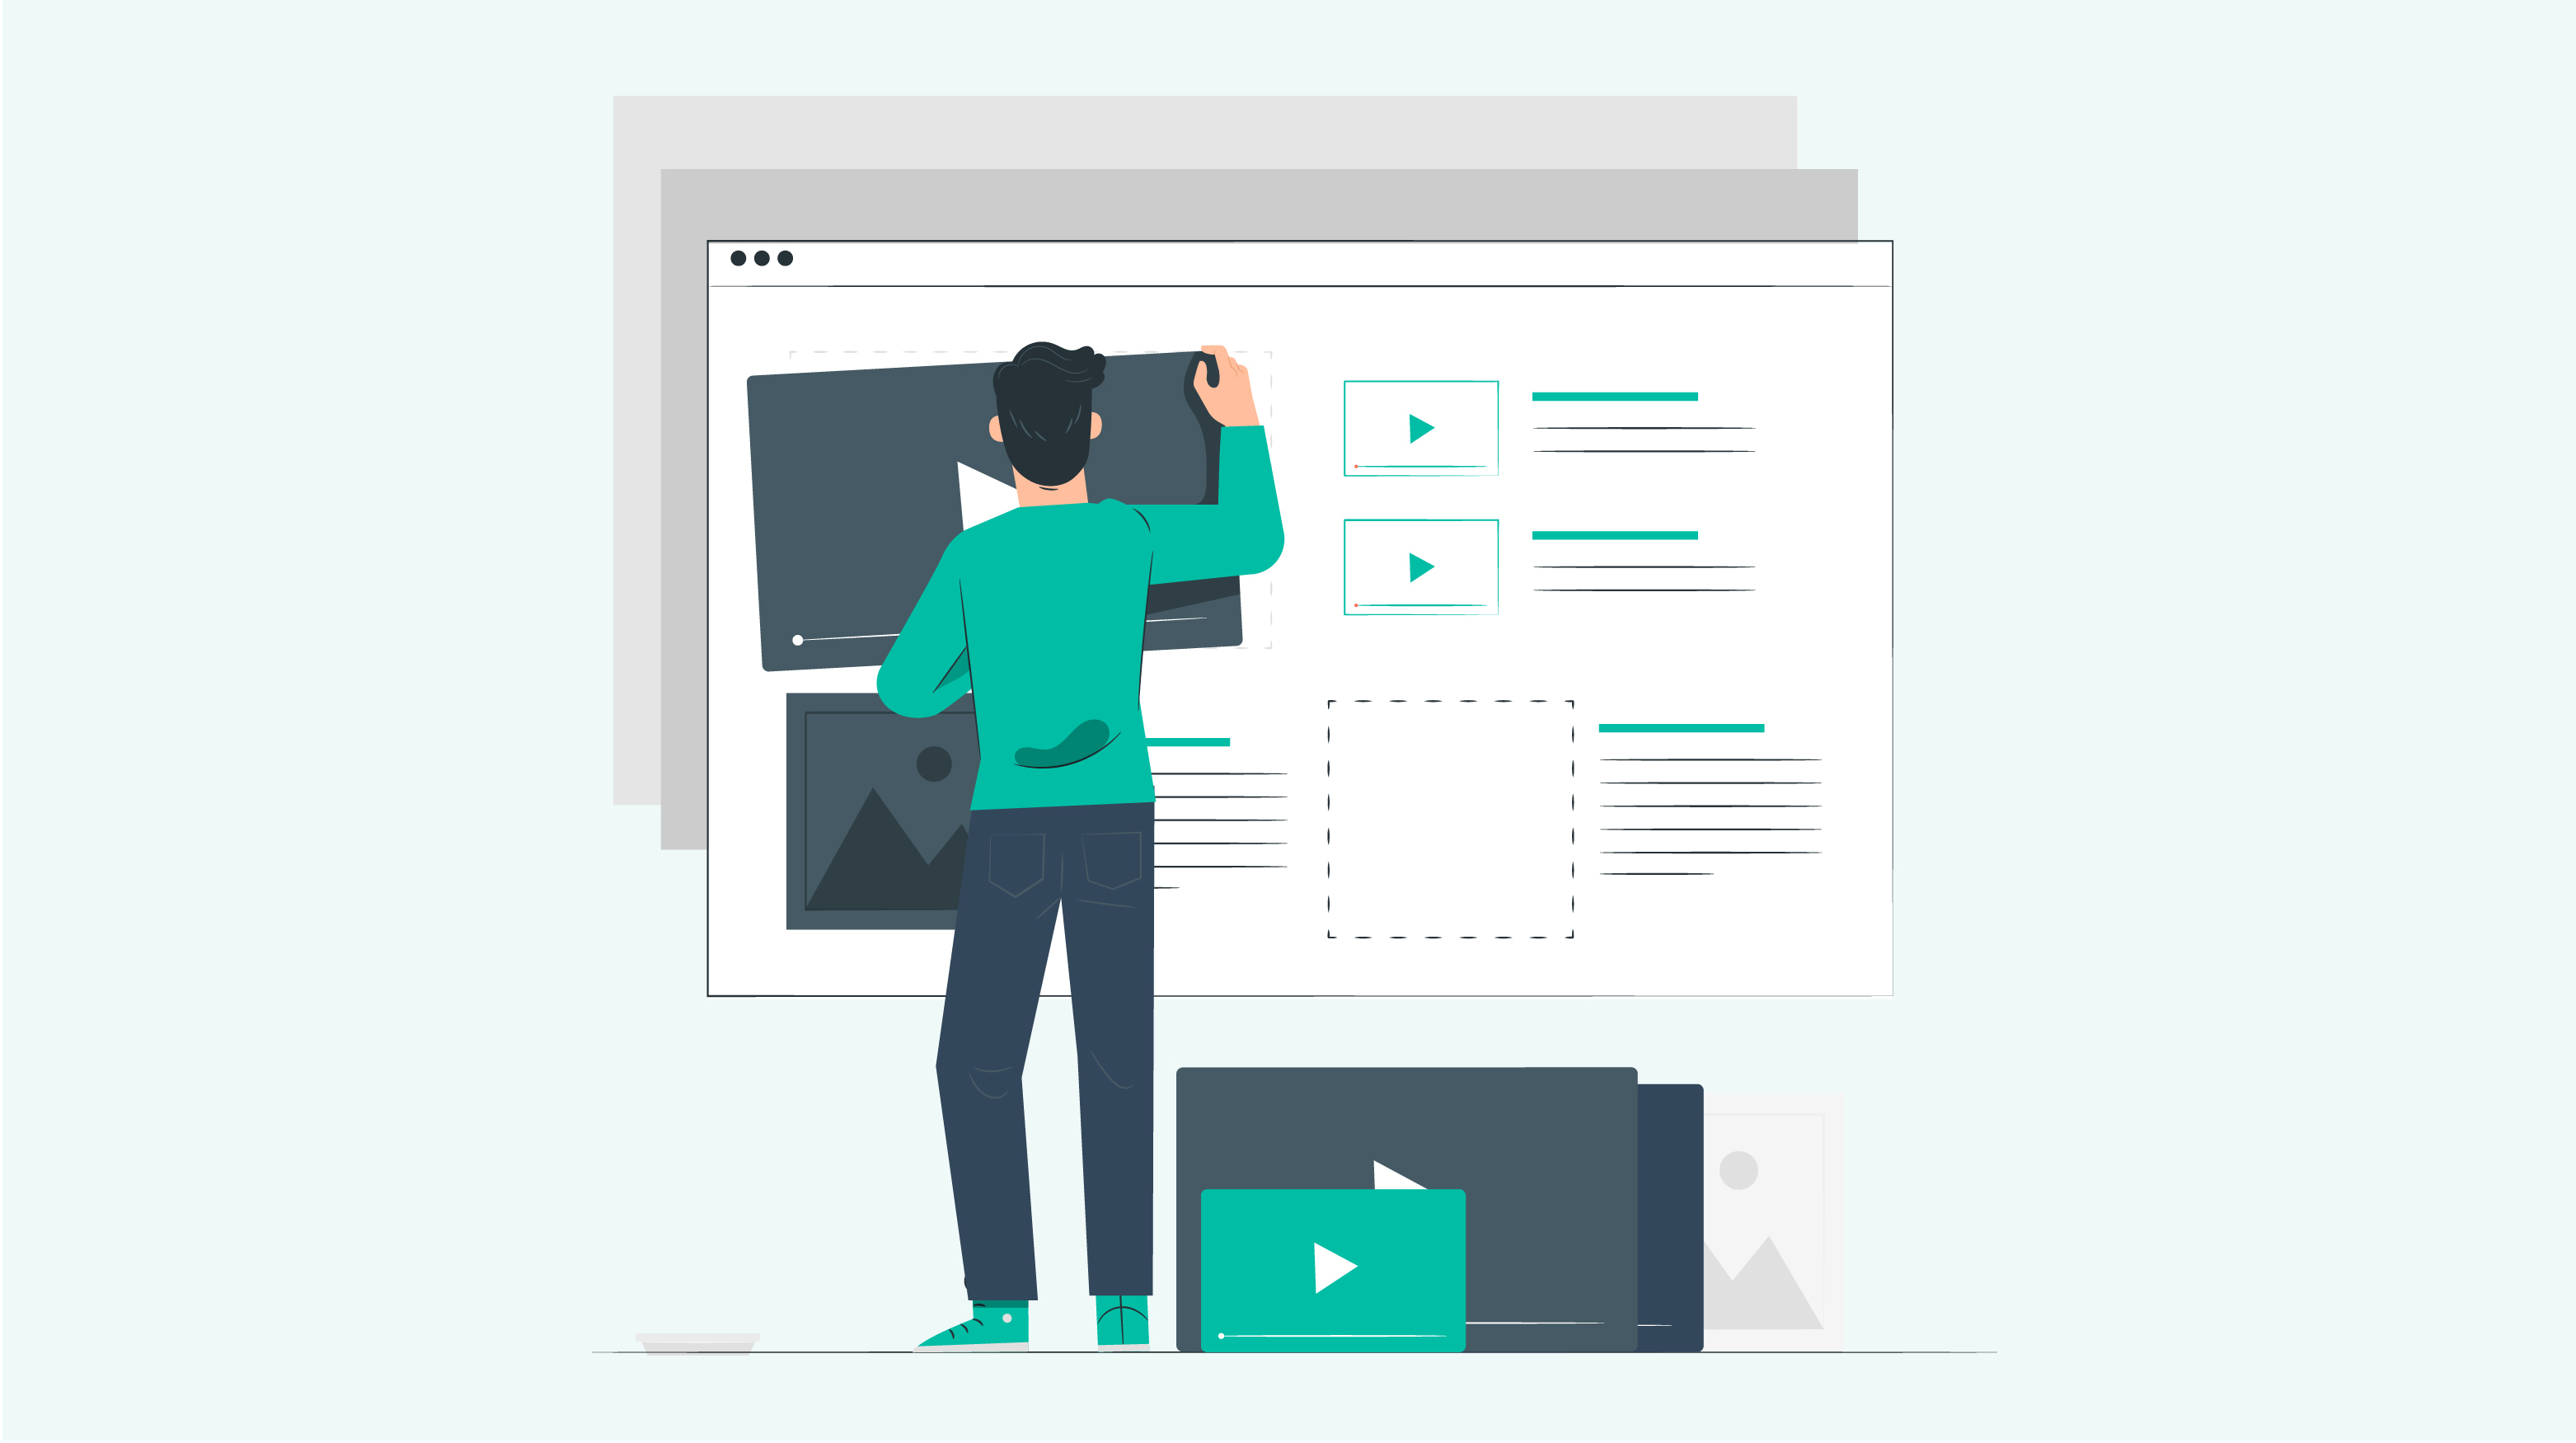 You need to know how Web Design impacts Content Marketing